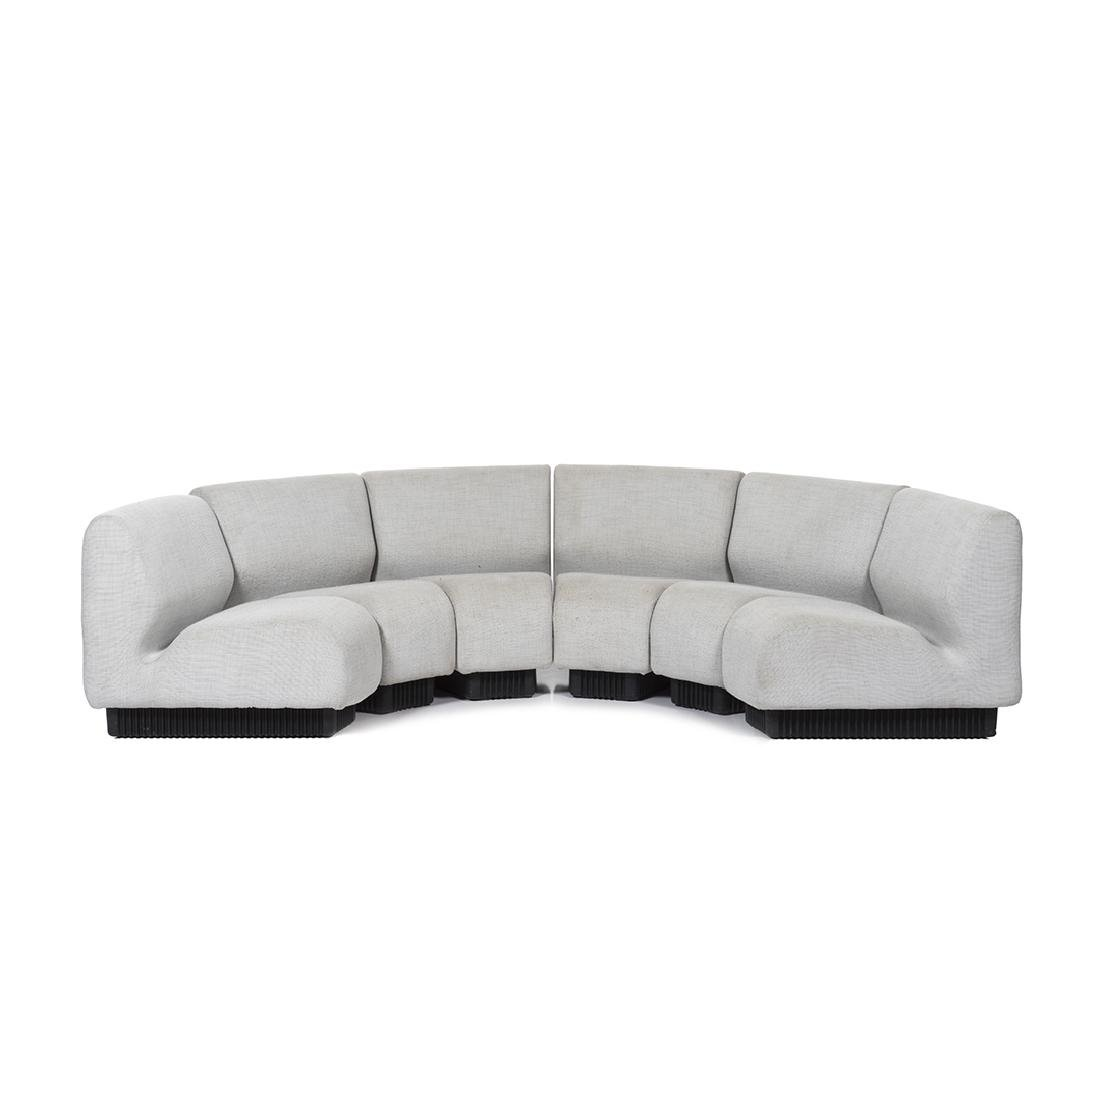 Don Chadwick Modular Sofa (6)